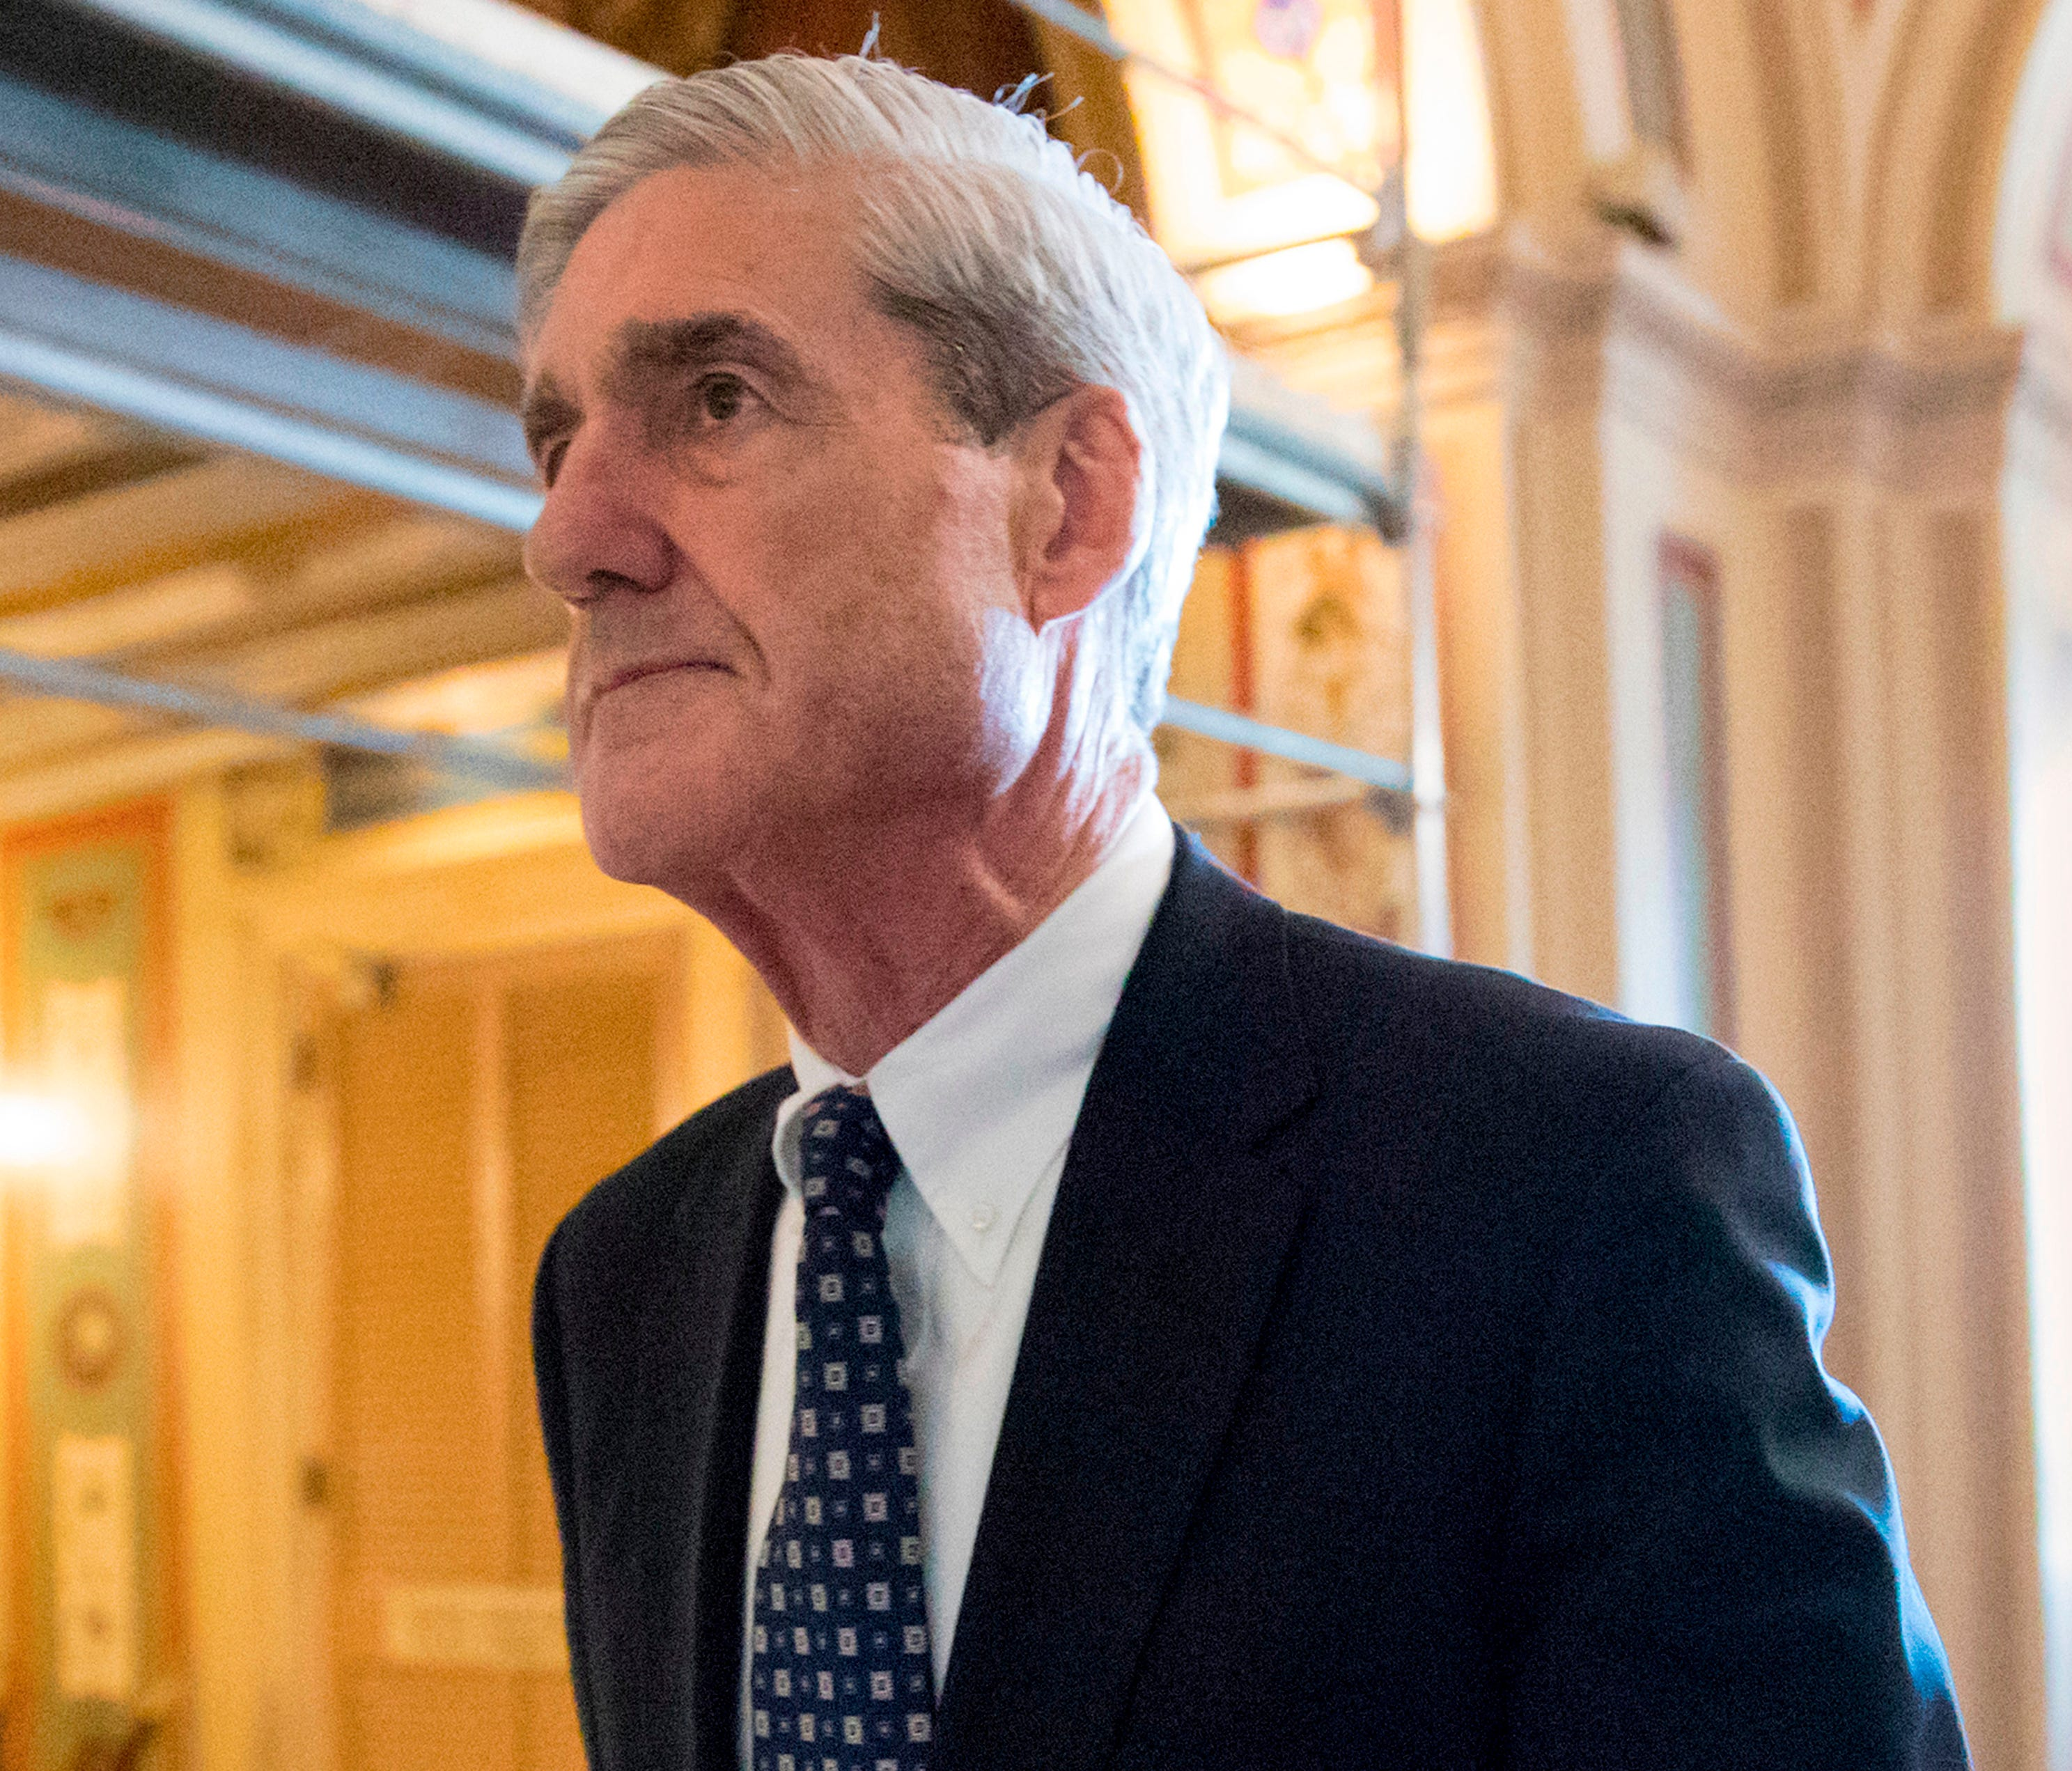 Special Counsel Robert Mueller departs after a meeting on Capitol Hill in Washington.